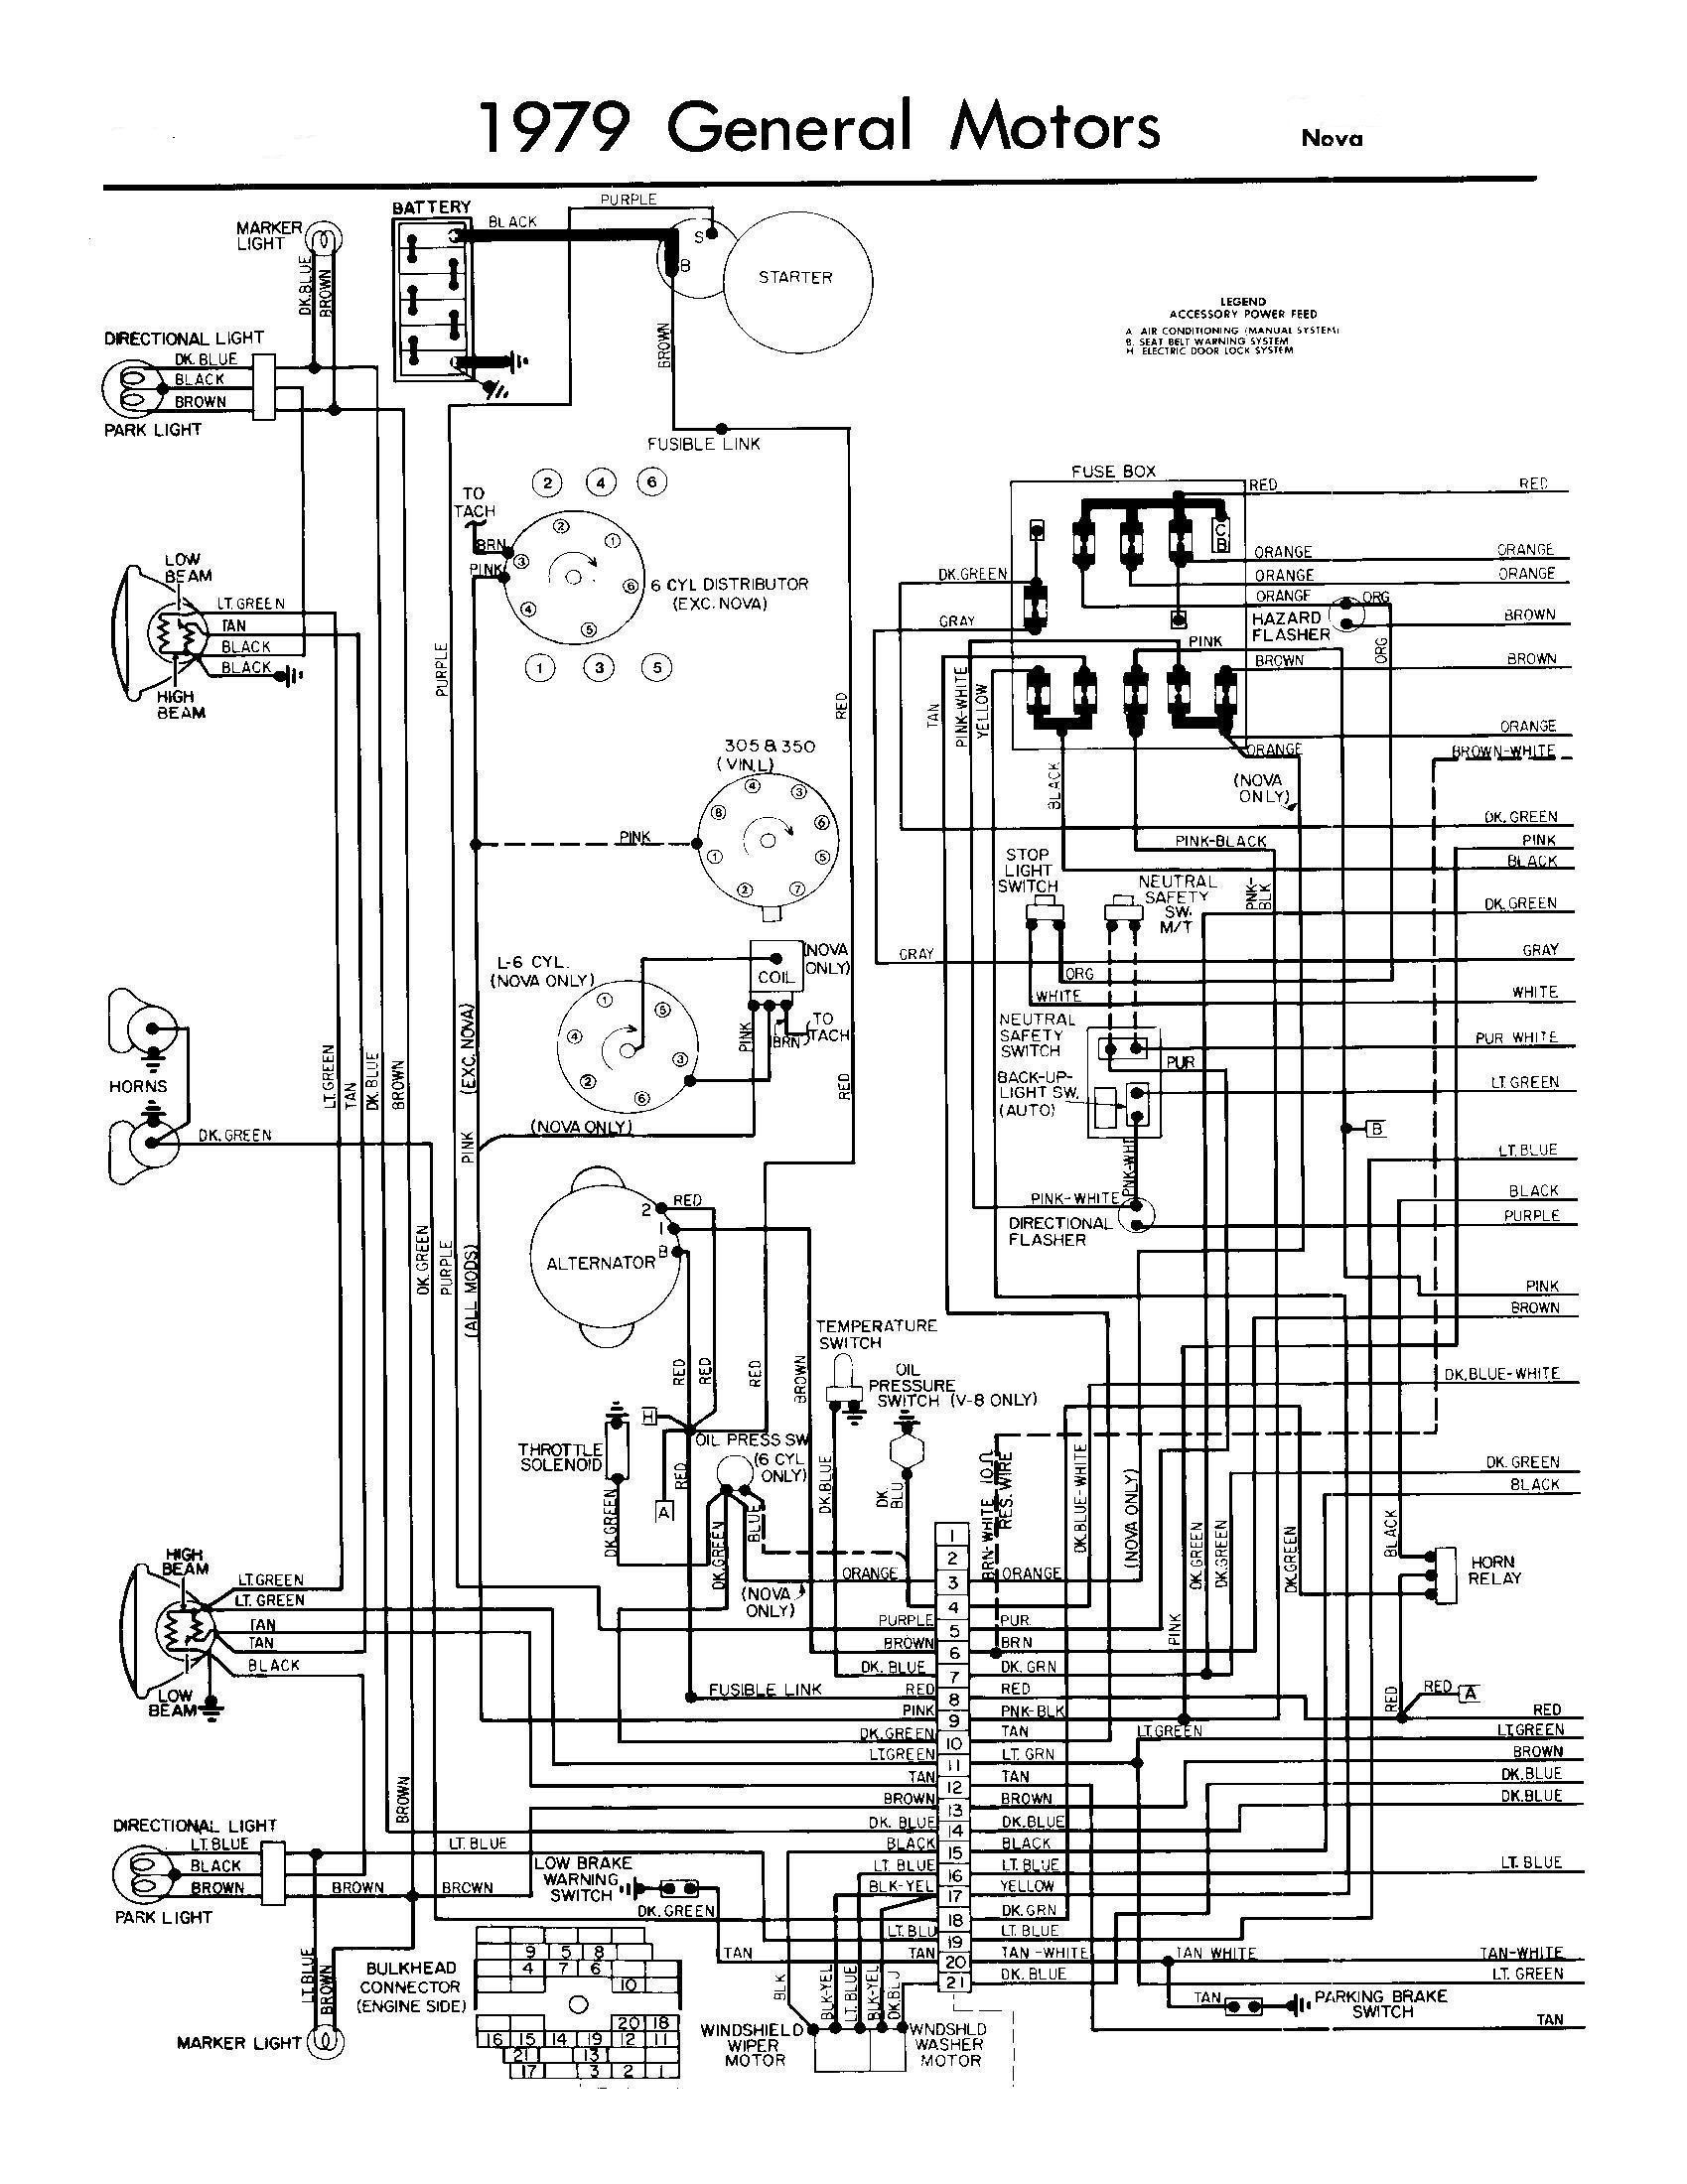 Free Pdf 1979 Camaro Fuse Box Diagram Explore Schematic Wiring 1970 1981 Dash Instrument Cluster Circuit Board For Models On Pontiac Firebird Rh Theiquest Co Panel 1968